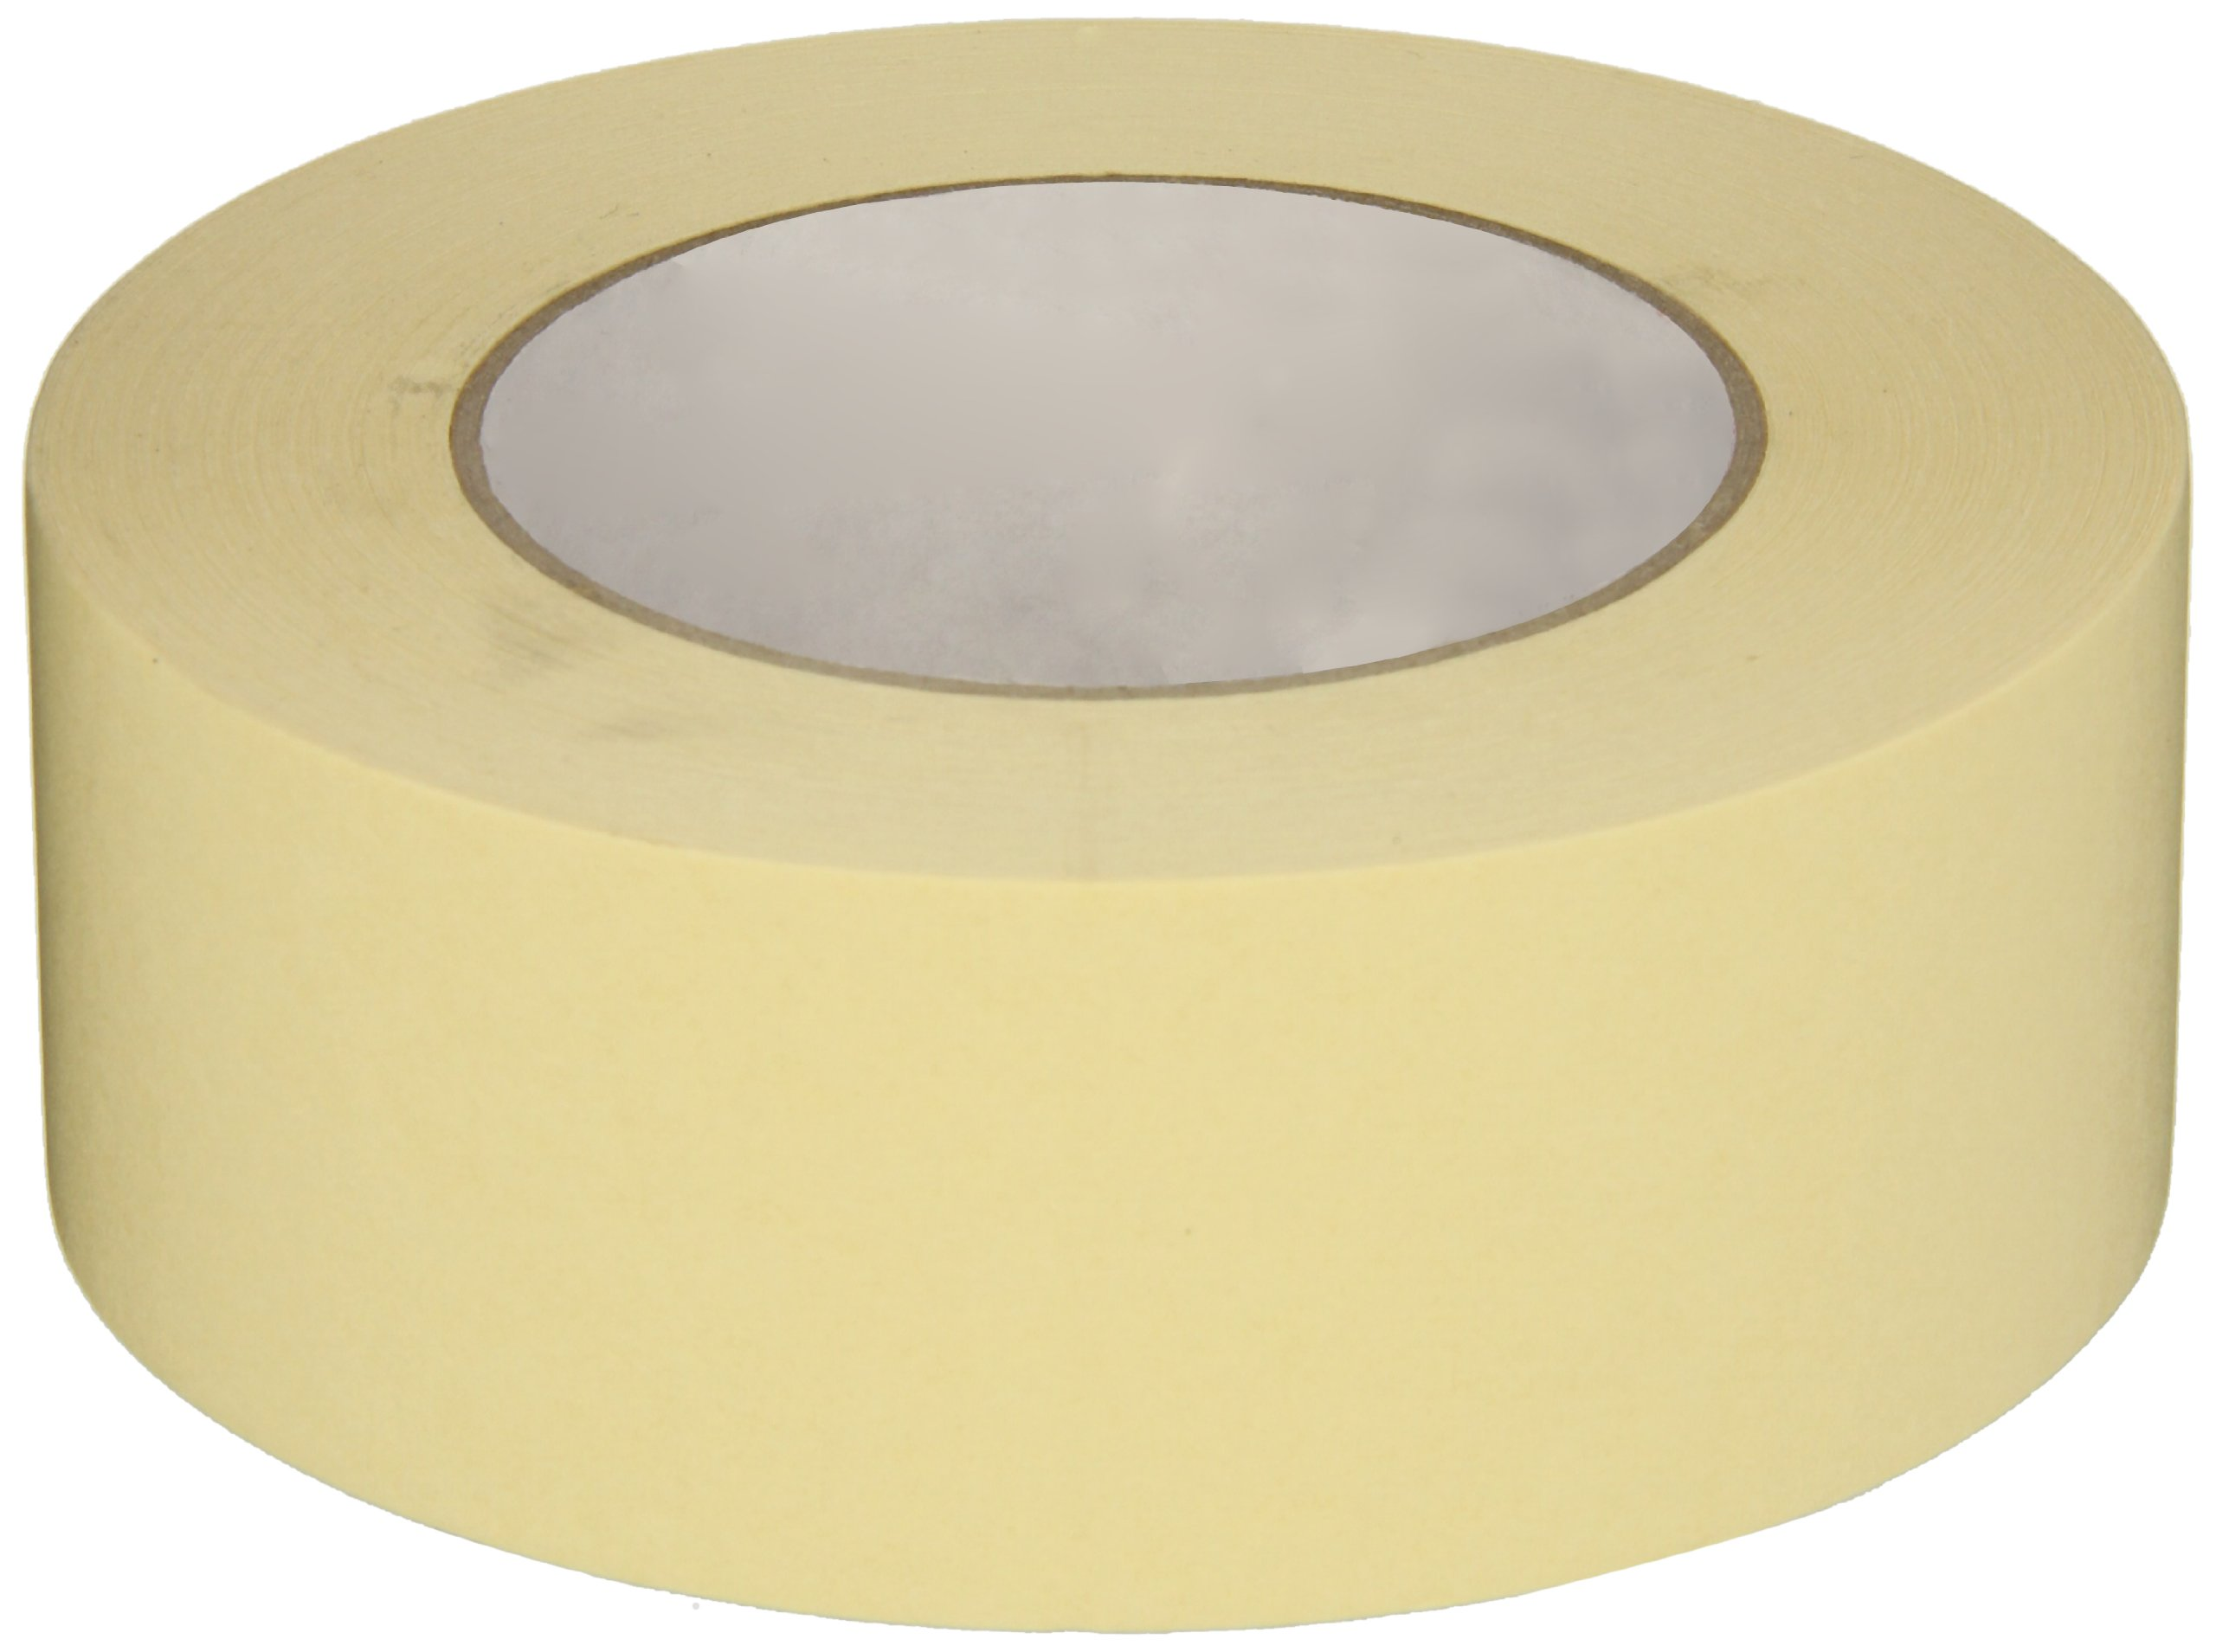 Intertape Polymer Group PG29 Low Tack Premium Paper Masking Tape, 48MM x 54.8M, Case of 24